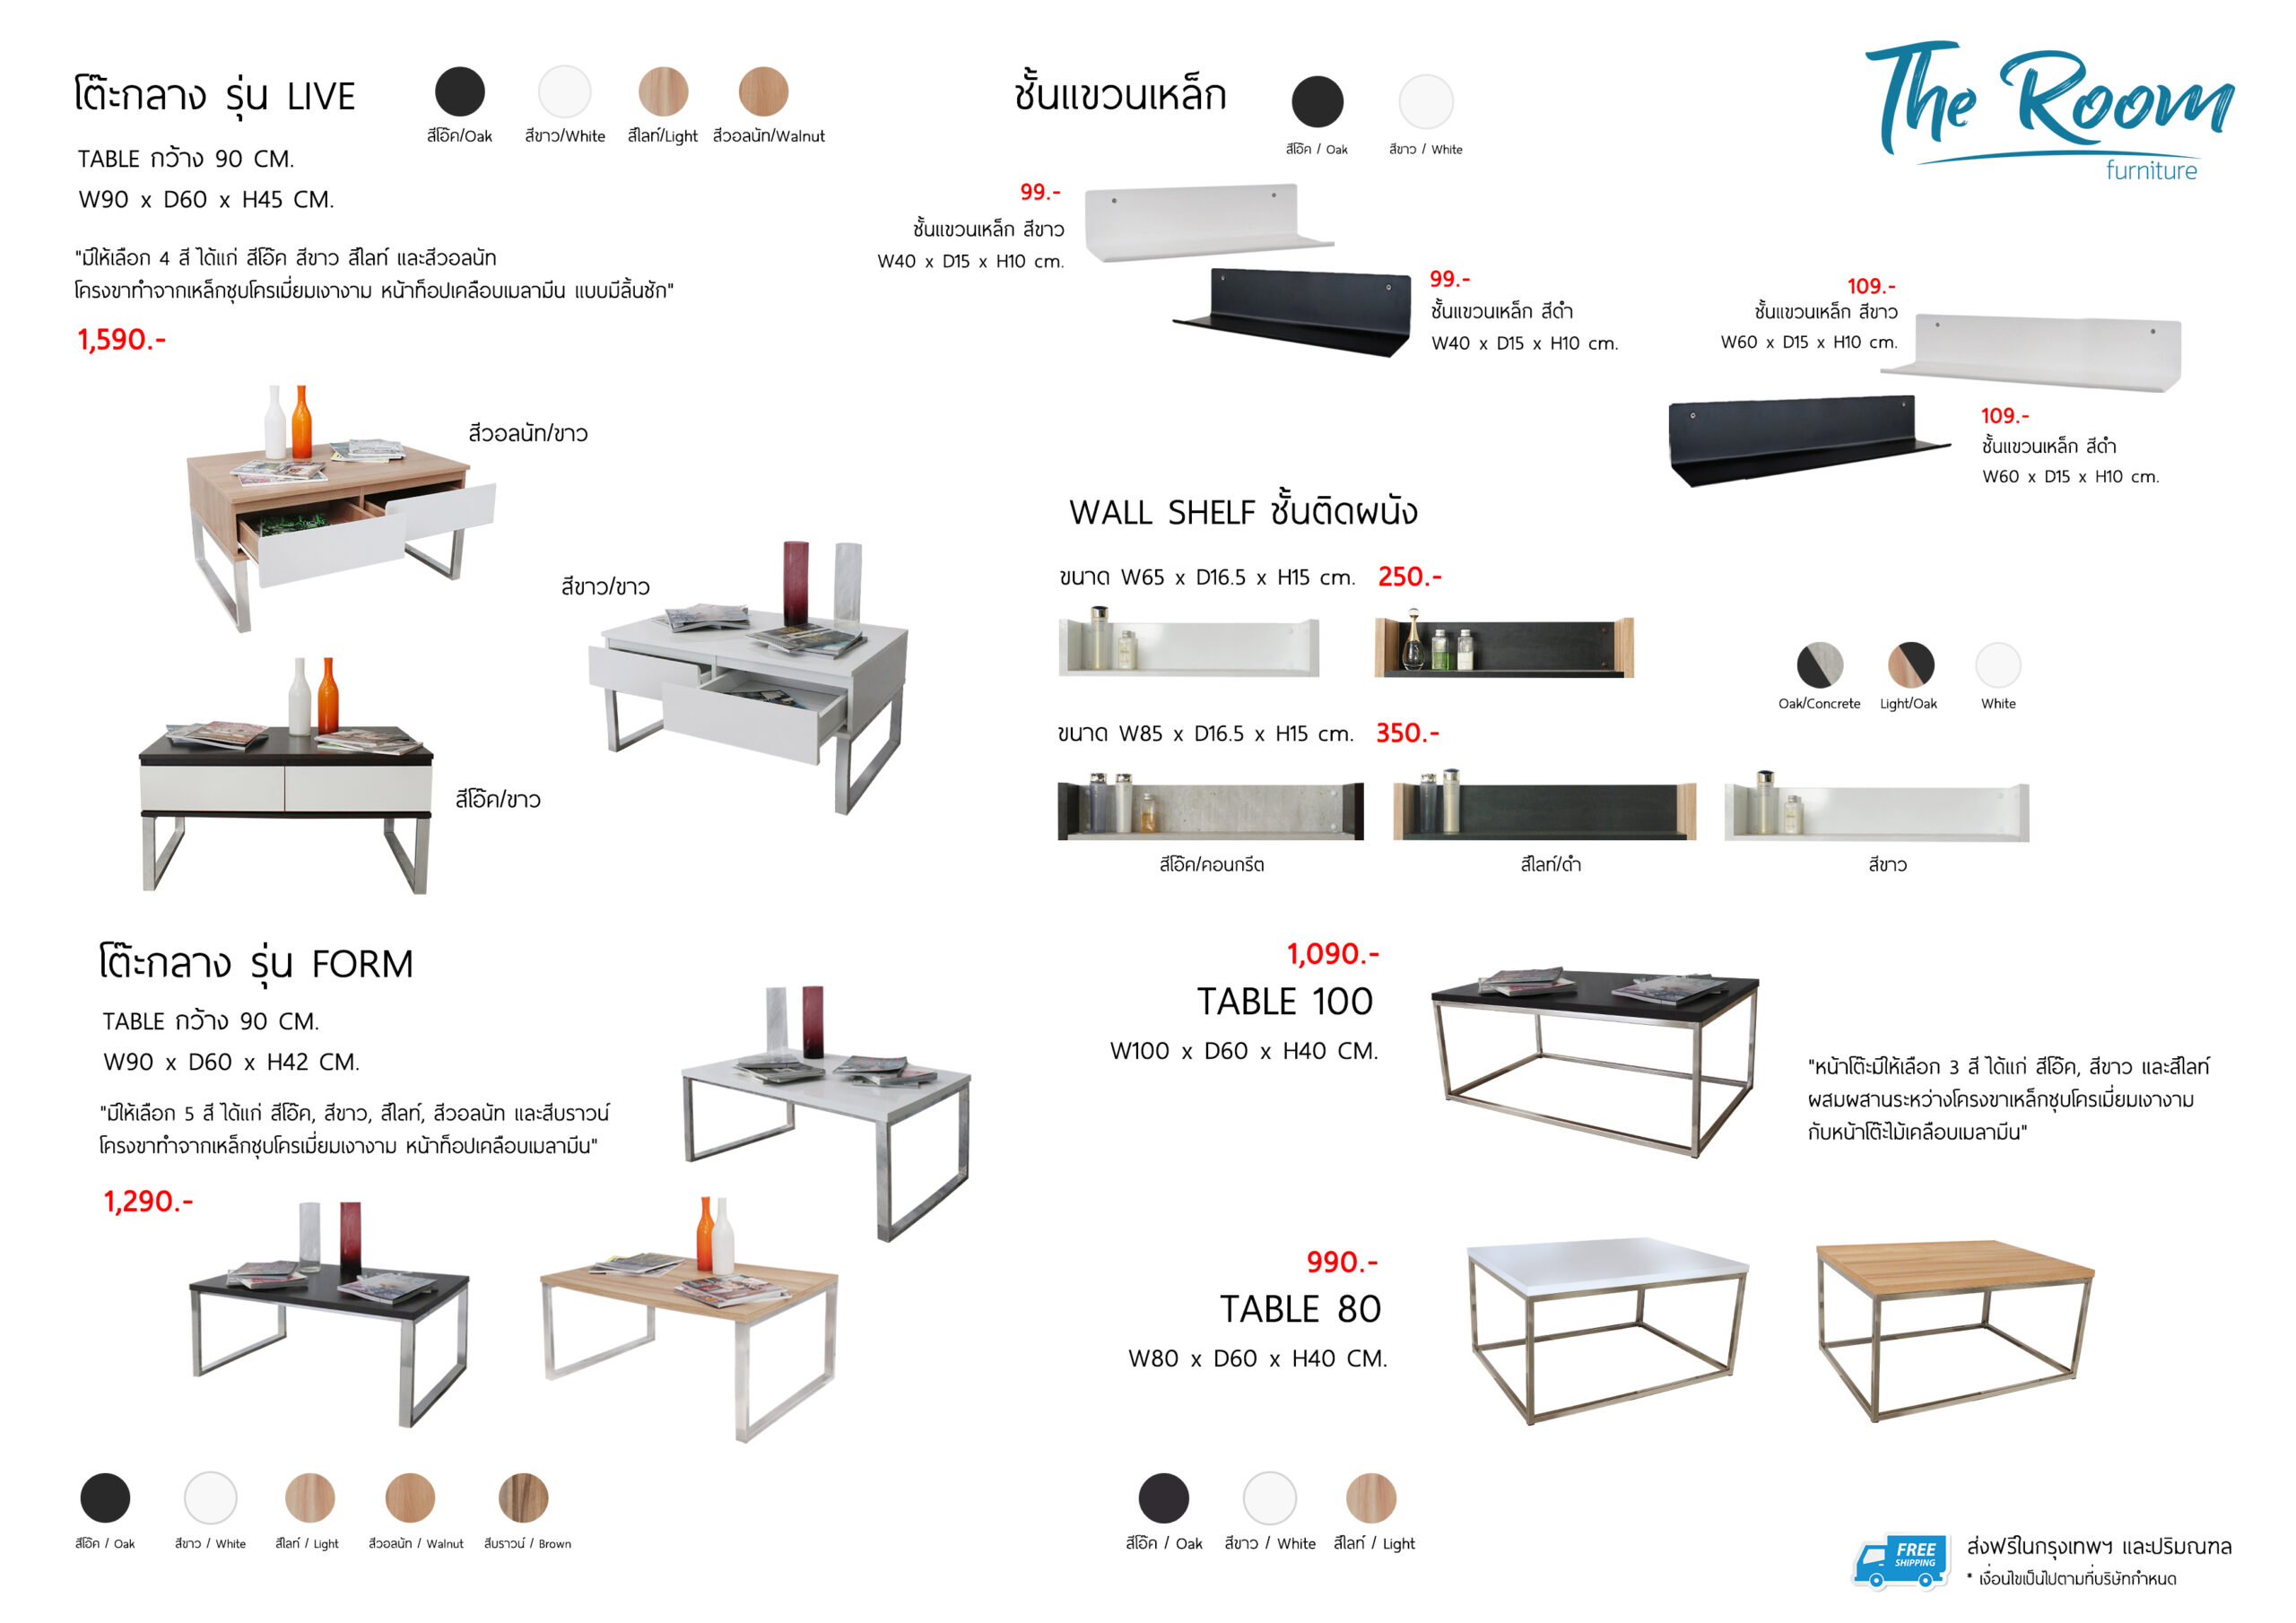 The Room Furniture